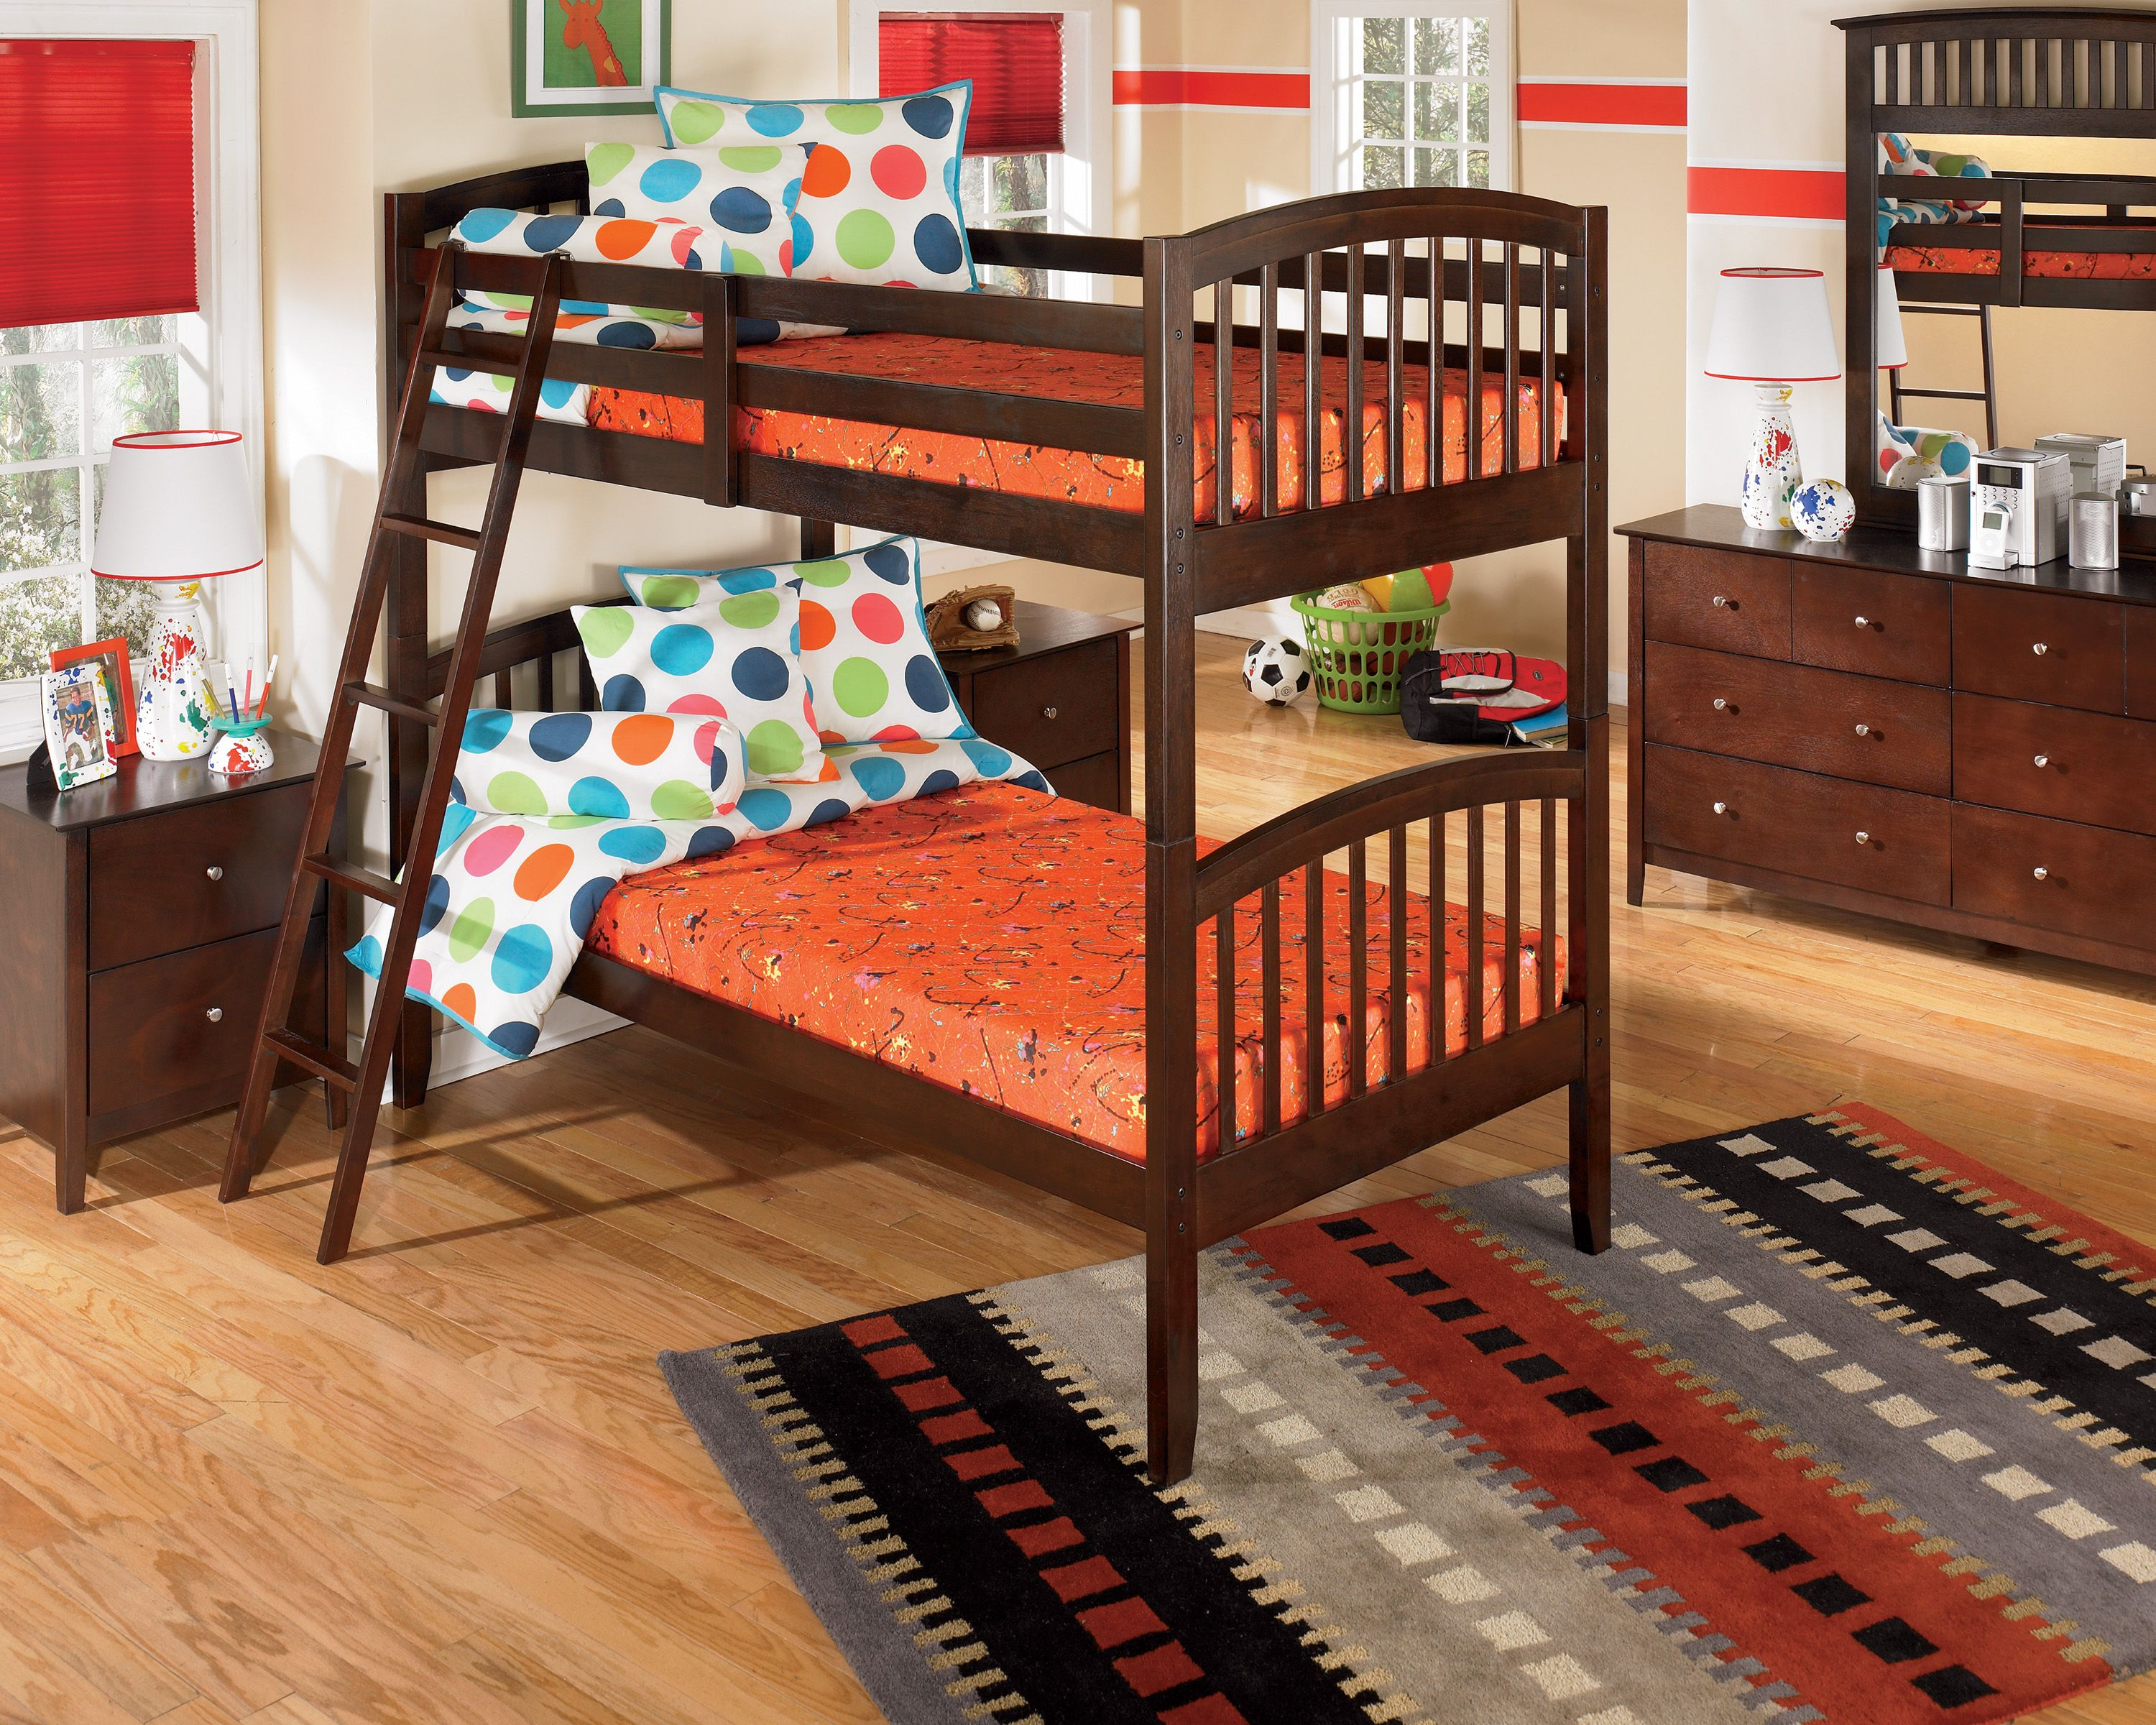 Bunk Bed Mattresses Should Be Thin Enough So That The Safety Rail